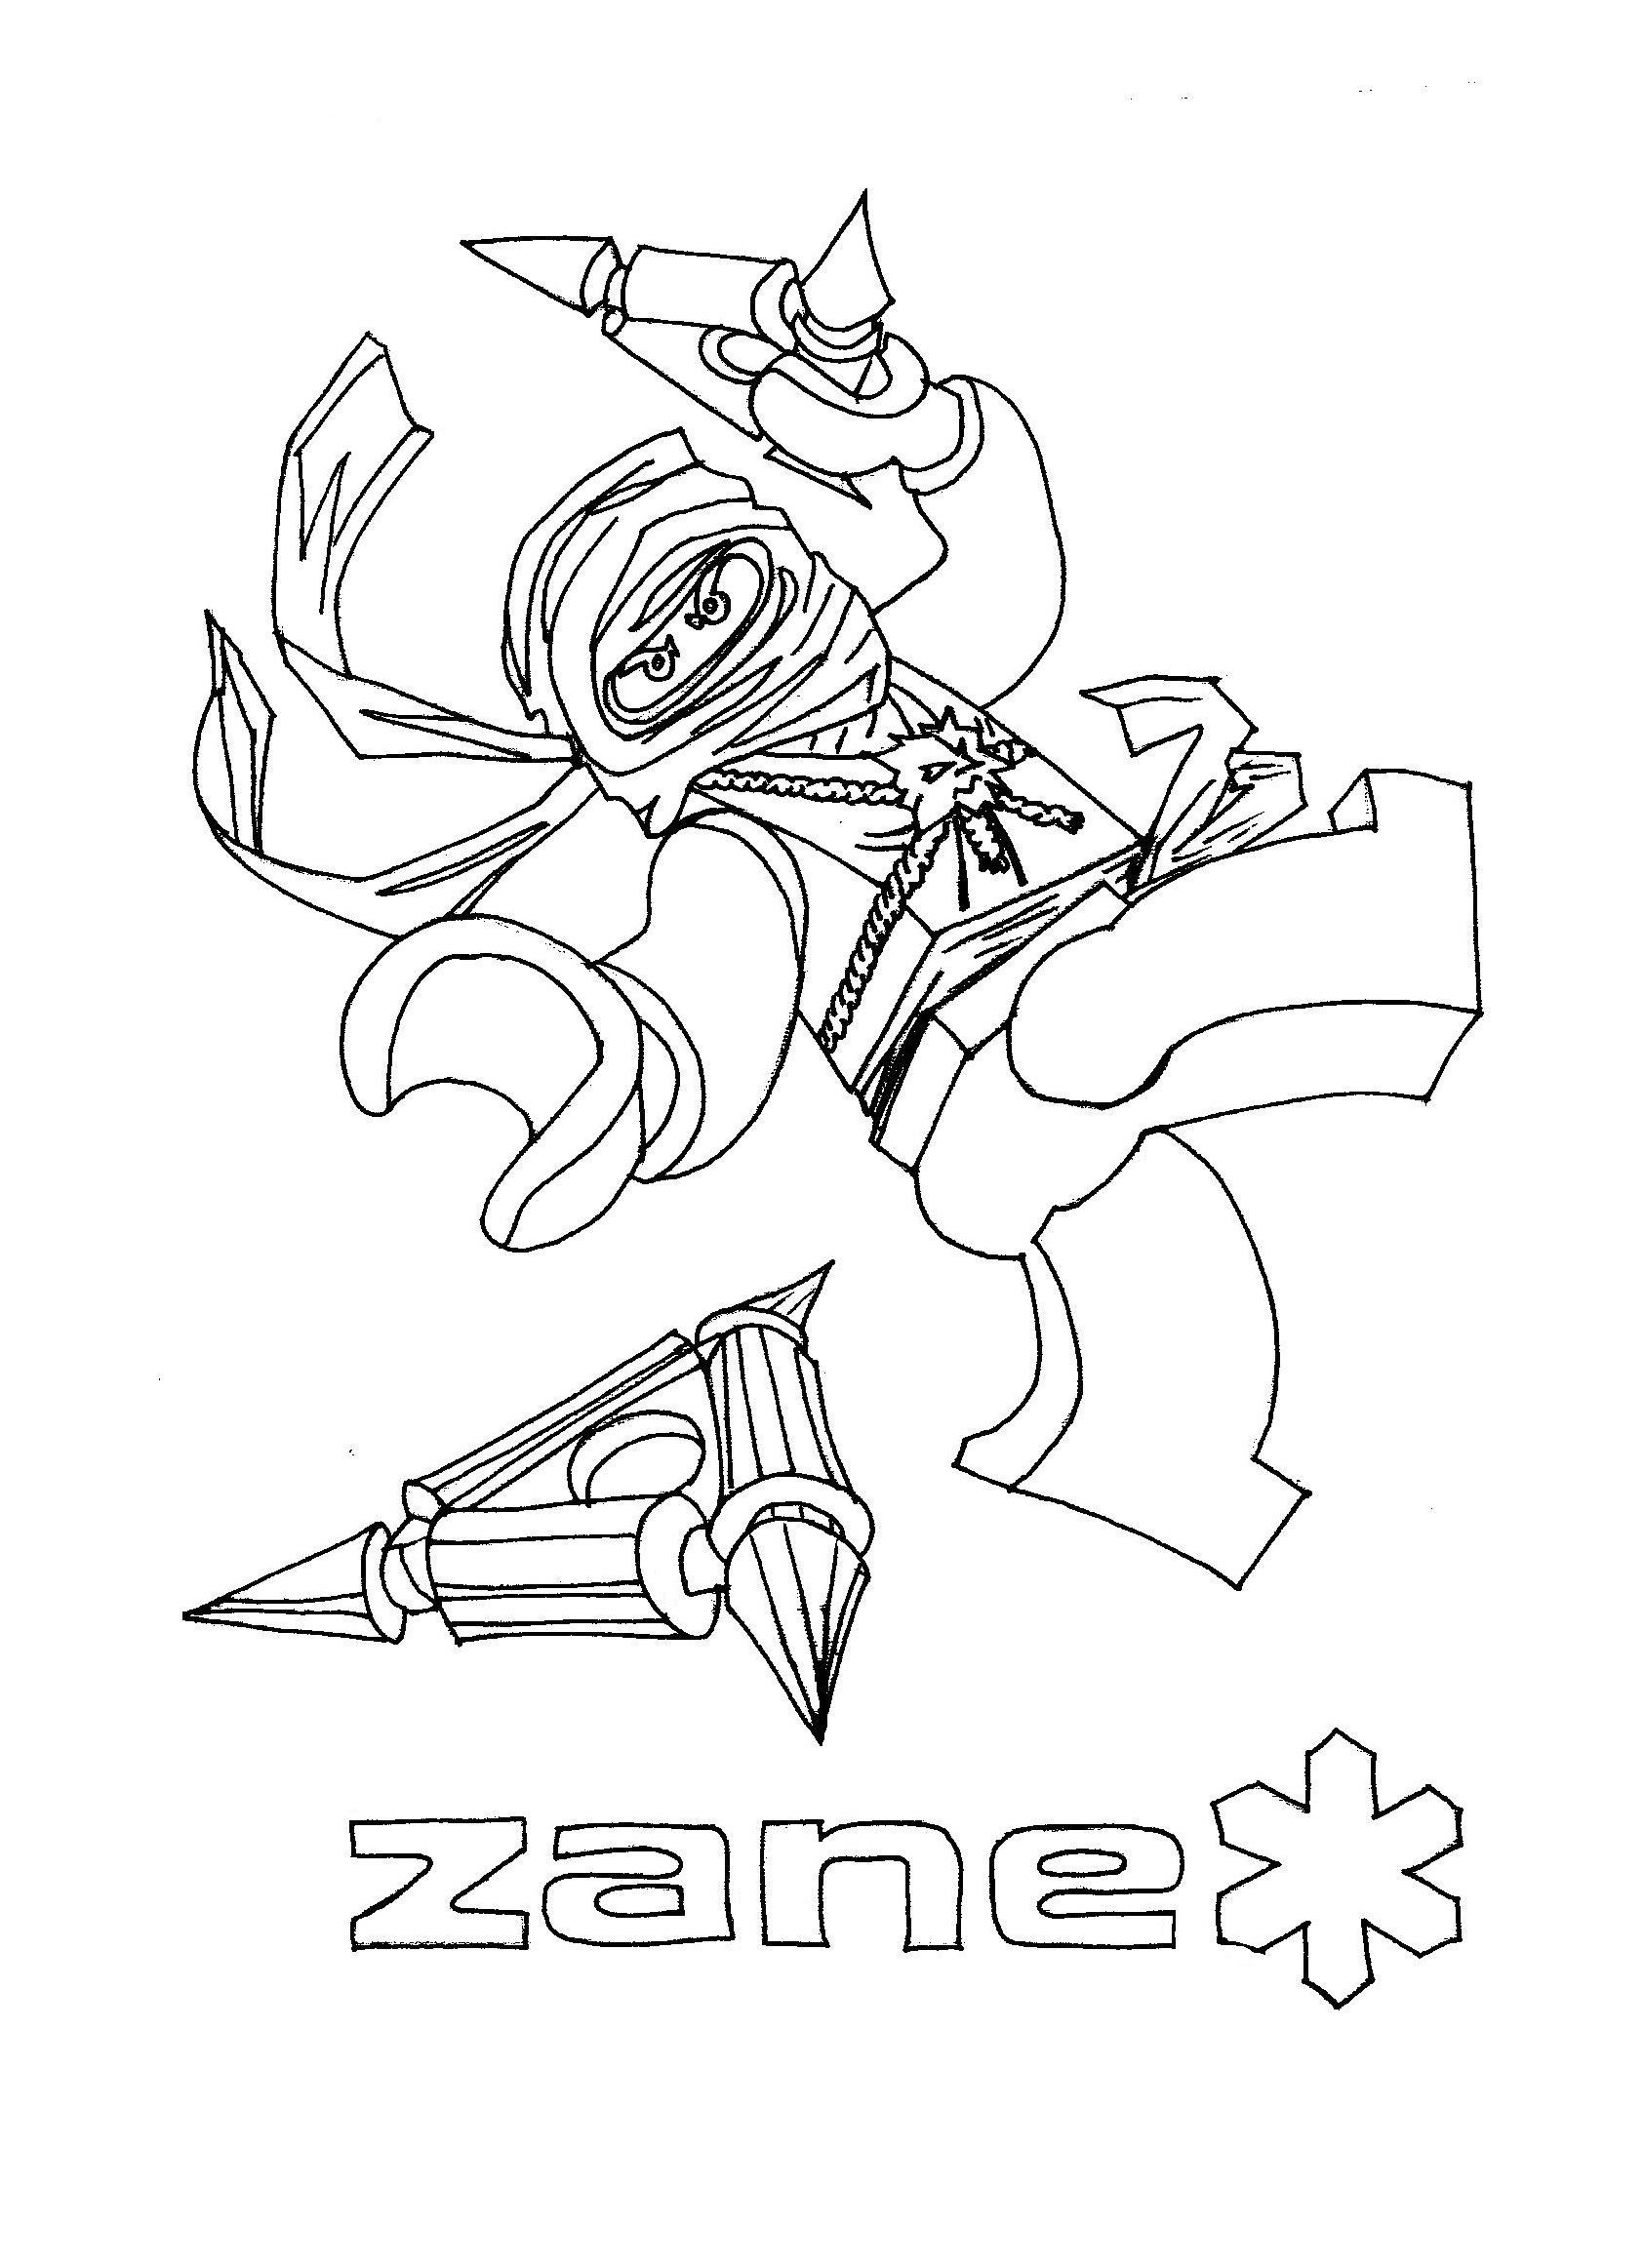 10 Lego Coloring Ninjago Coloring Pages Valentine Coloring Pages Lego Coloring Pages